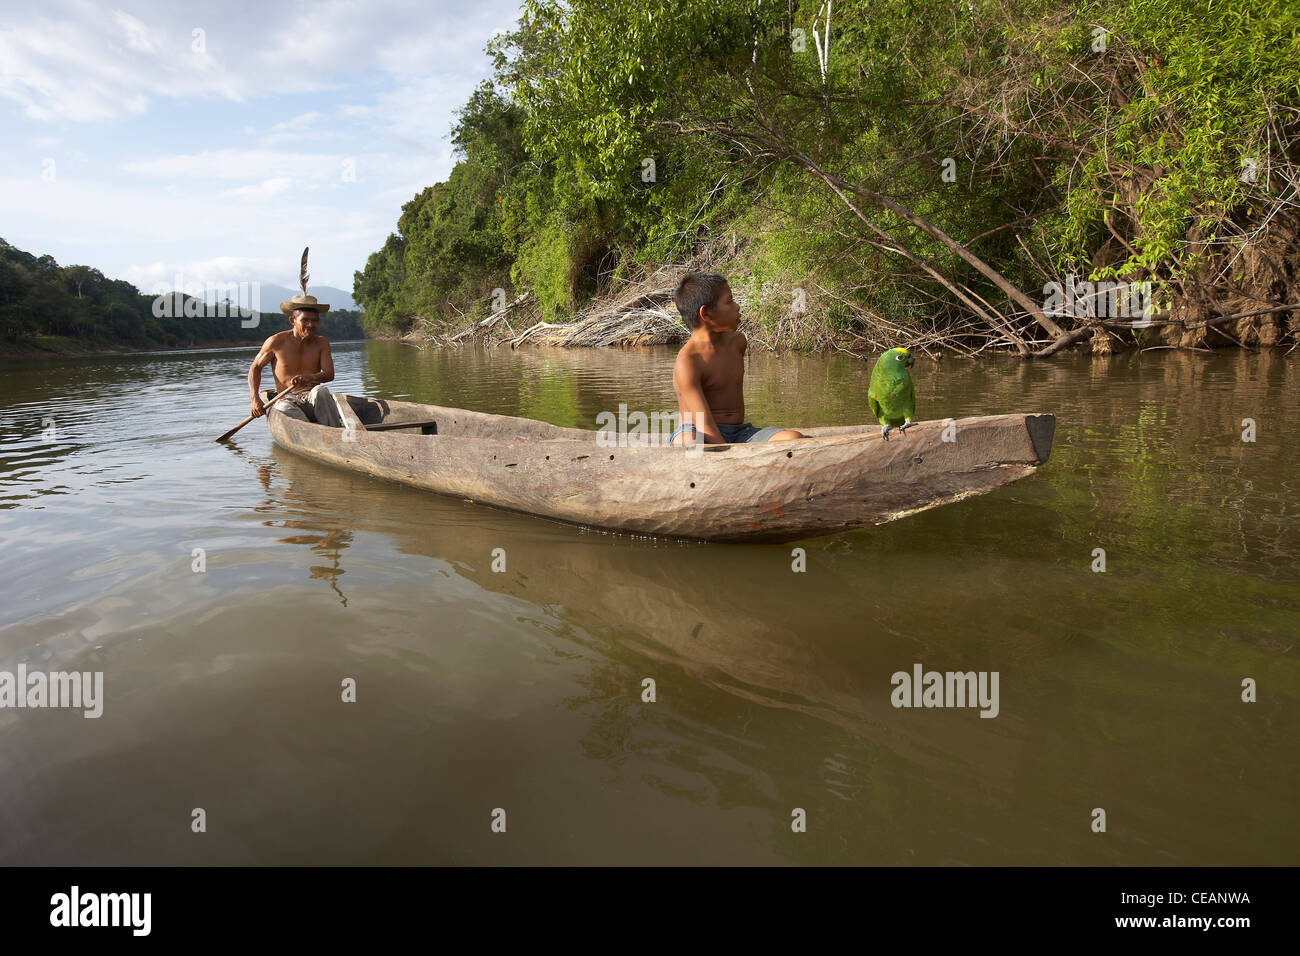 Amerindian villager and young boy with parrot paddle a dugout canoe along the Rewa River, Rewa, Guyana, South America. - Stock Image